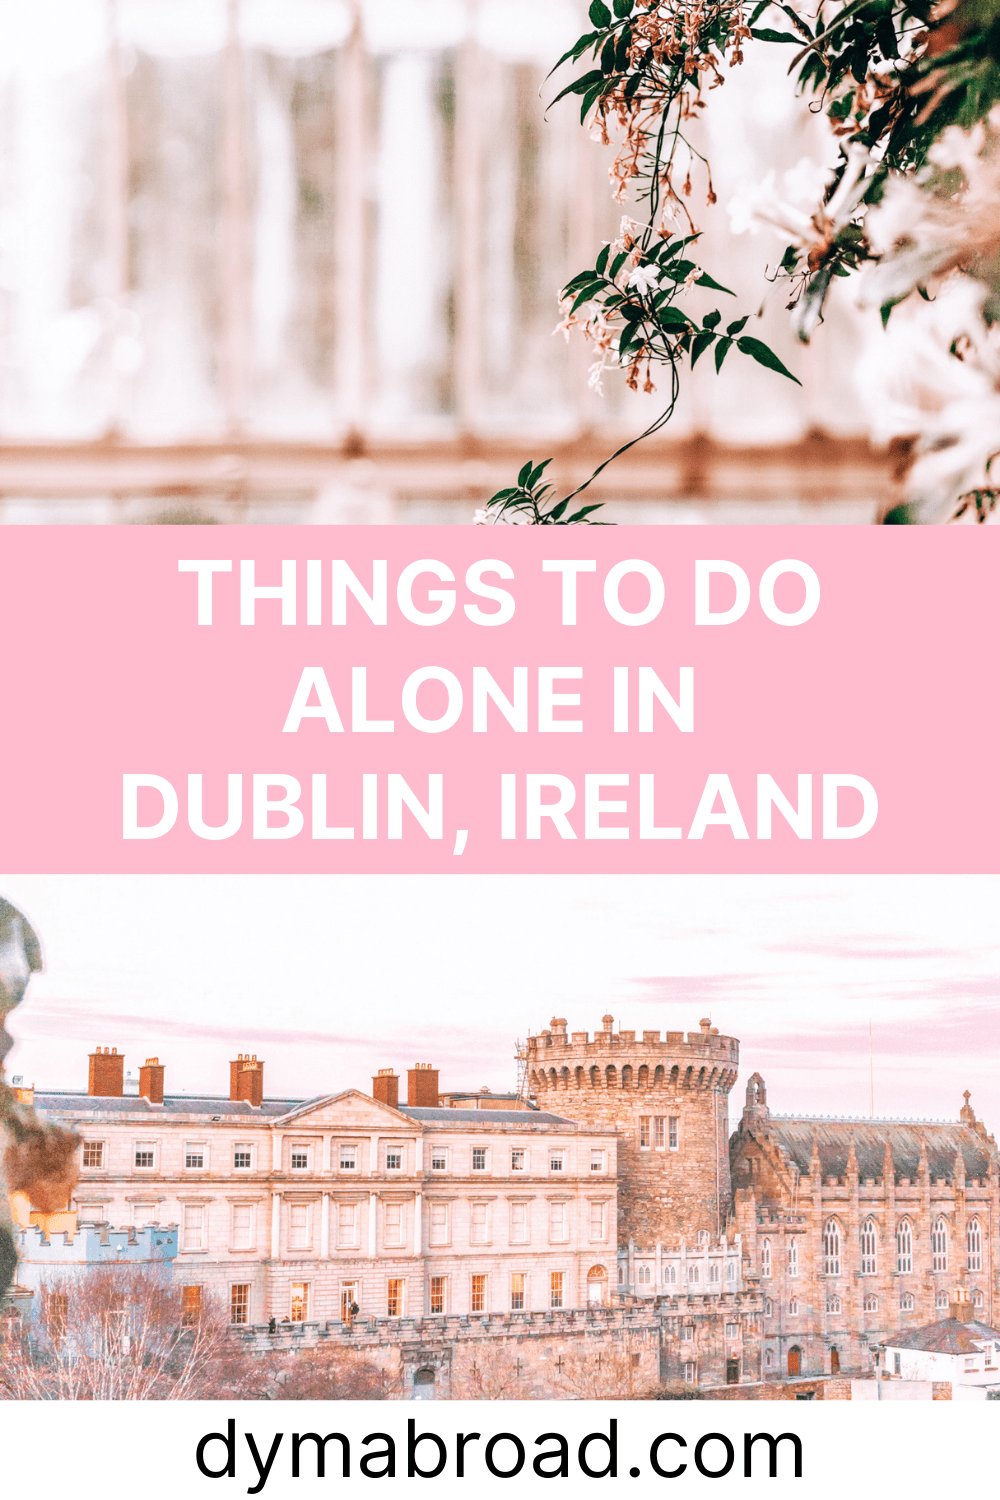 Things to do alone in Dublin Pinterest image